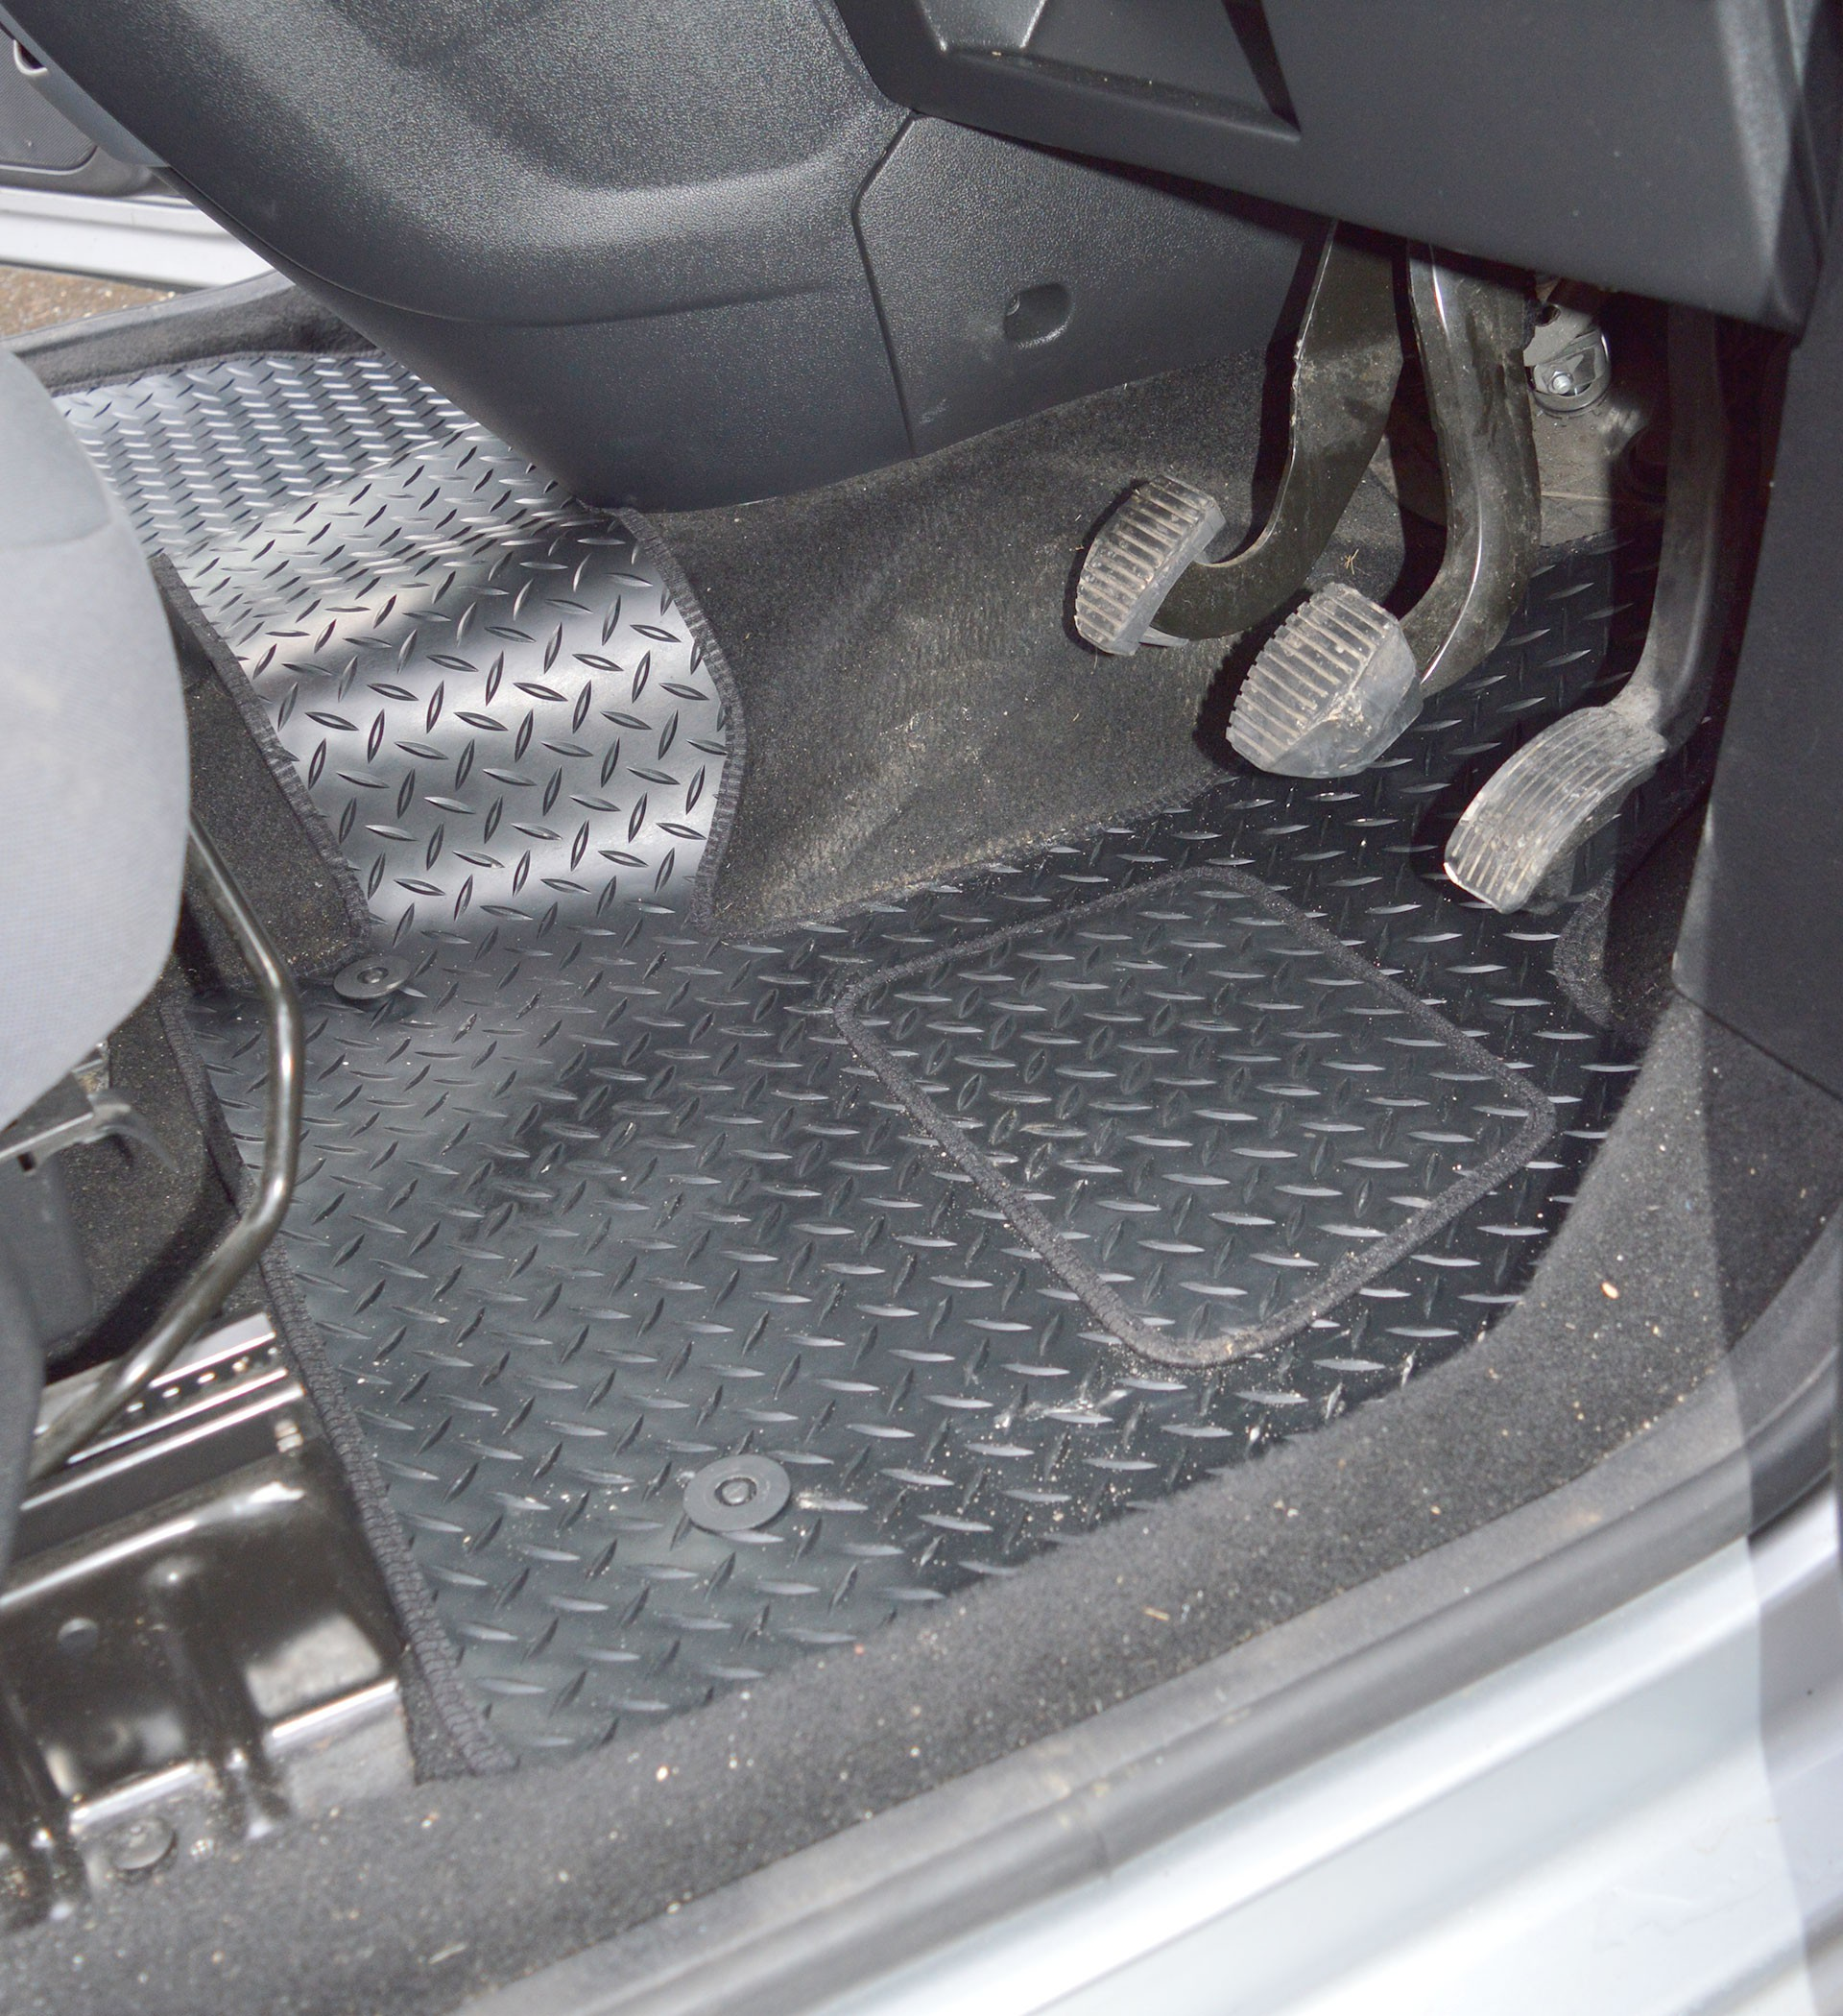 of lovely mat house car luxury svm signature auto sales rubber series post mats related floor flooring